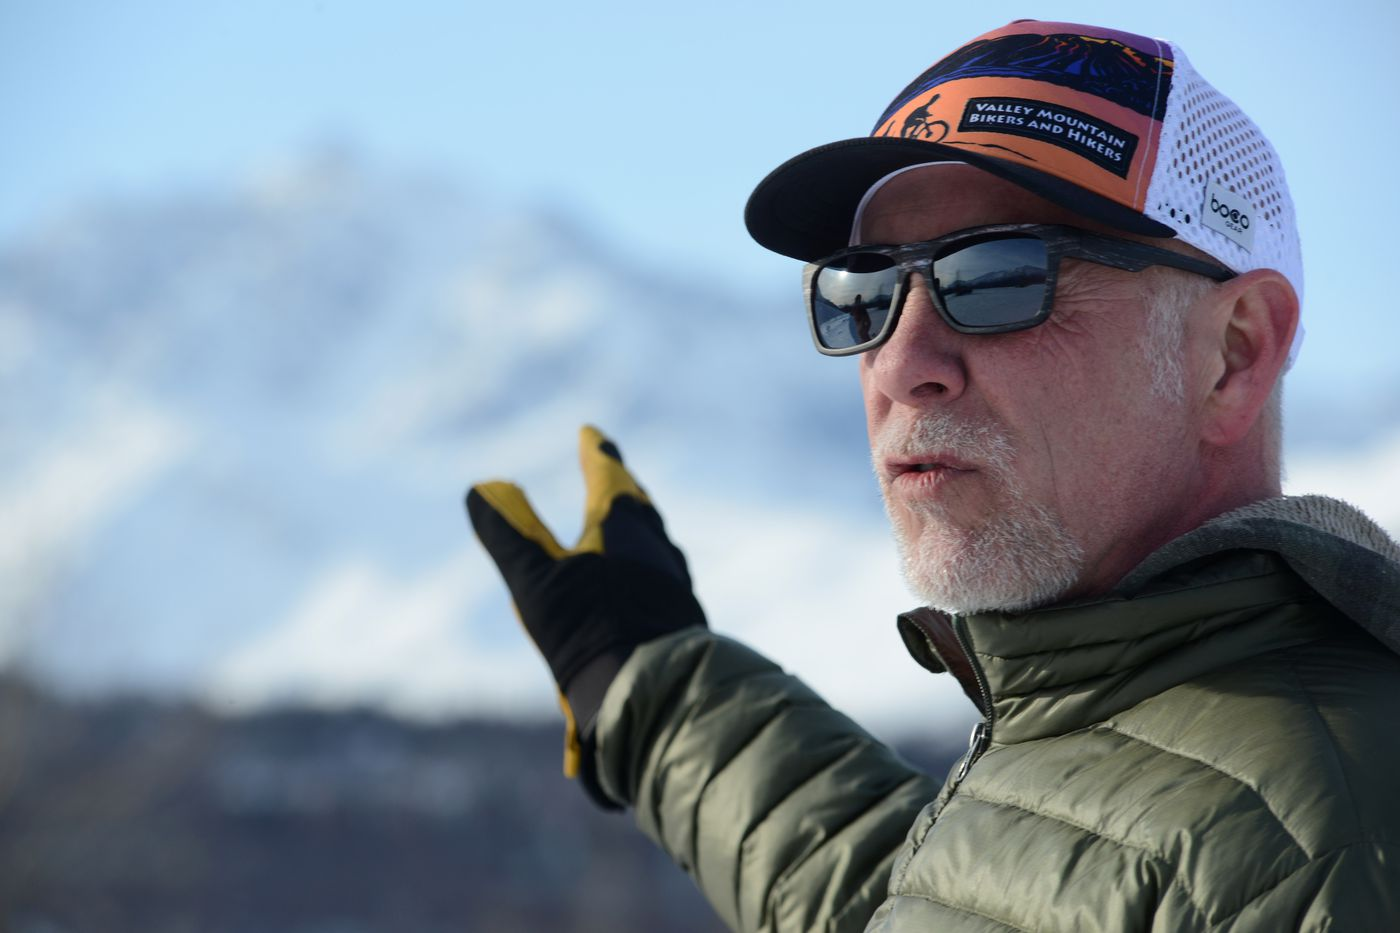 Tom Faussett talks about access to the trail leading to Knik Glacier on Wednesday, March 24, 2021. Faussett owns a business on the south side of the Knik River and has carved out a parking lot on his property for bikers to use. (Anne Raup / ADN)